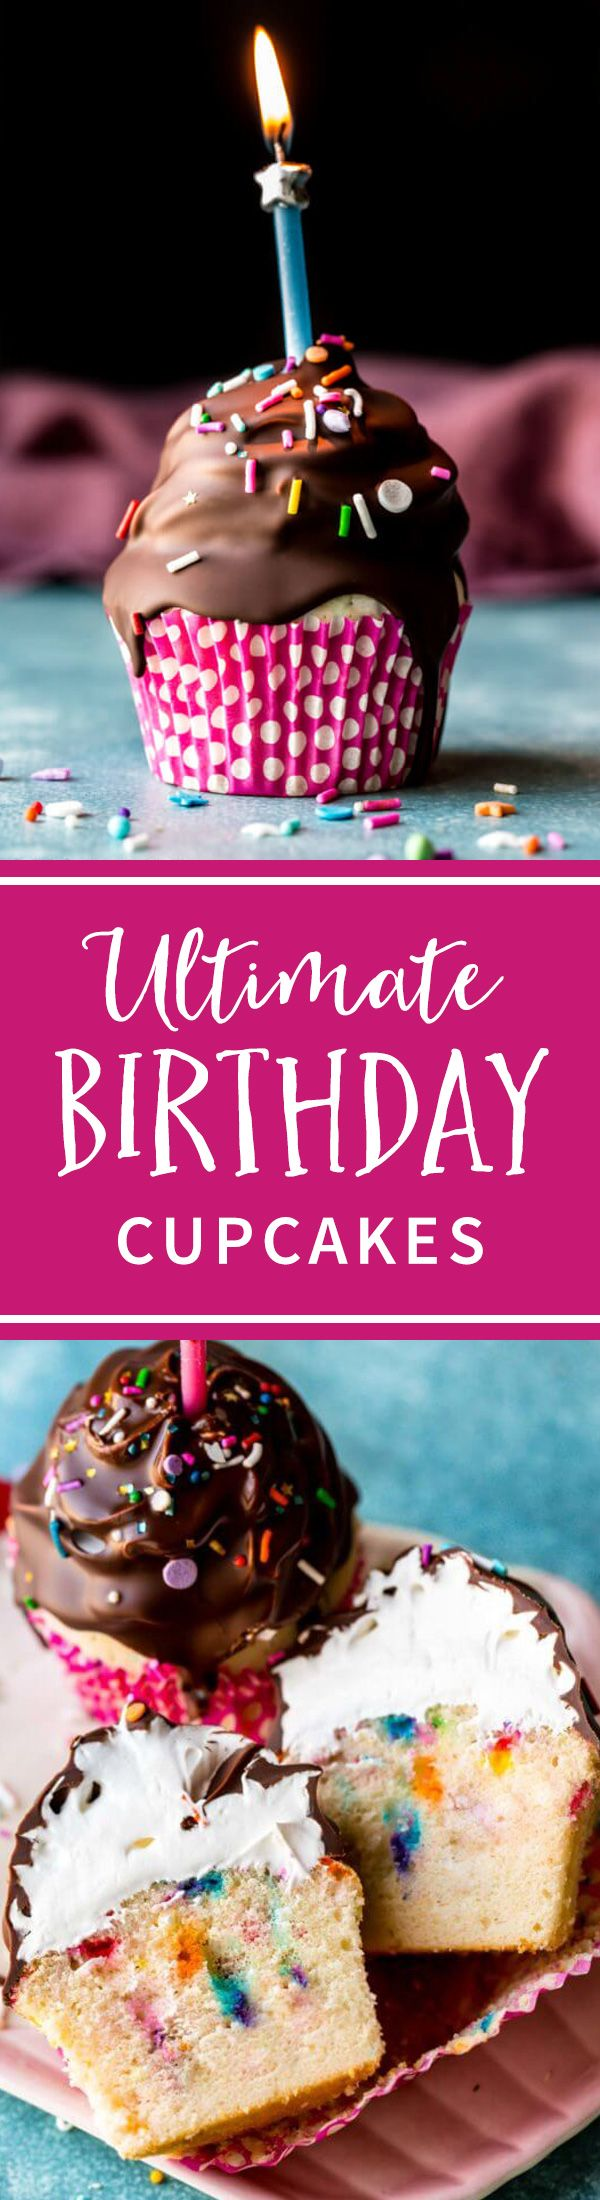 These are the ultimate birthday cupcakes! They start with a funfetti cupcake and are topped with marshmallow frosting and a chocolate shell! Recipe on sallysbakingaddiction.com